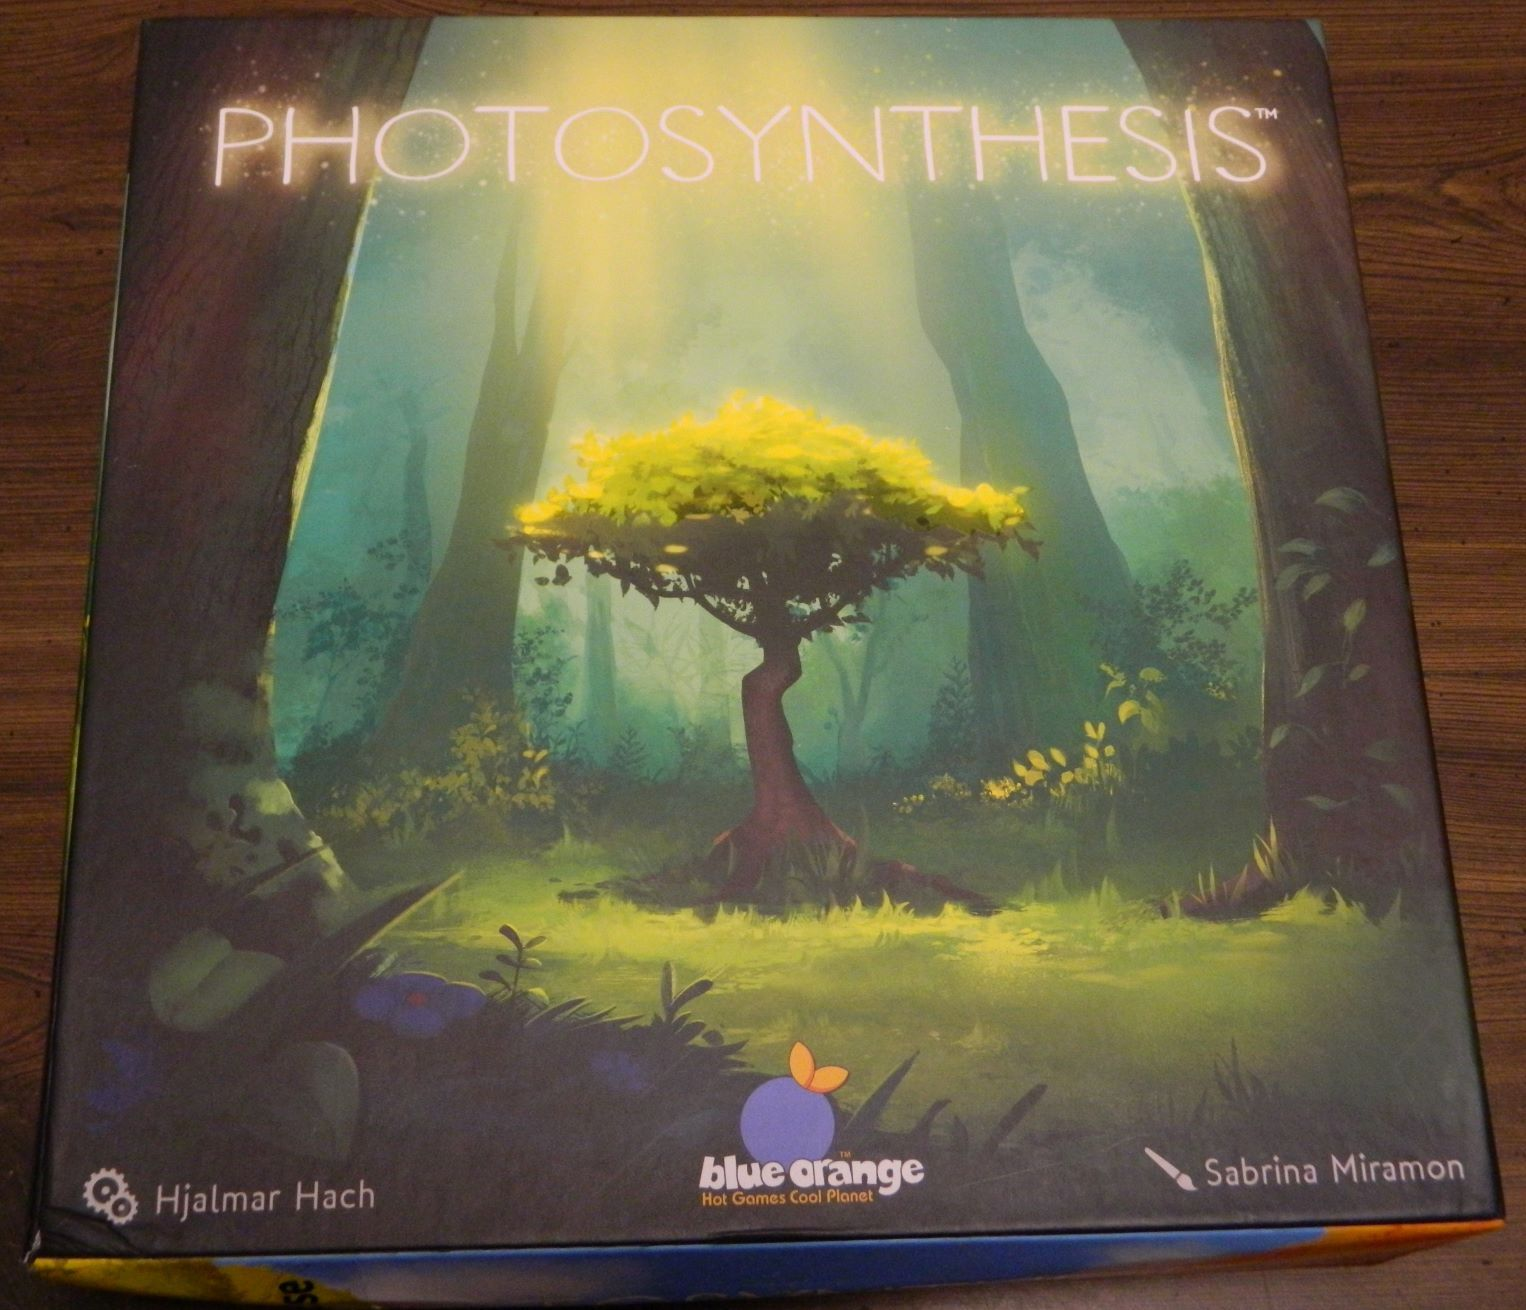 Box for Photosynthesis